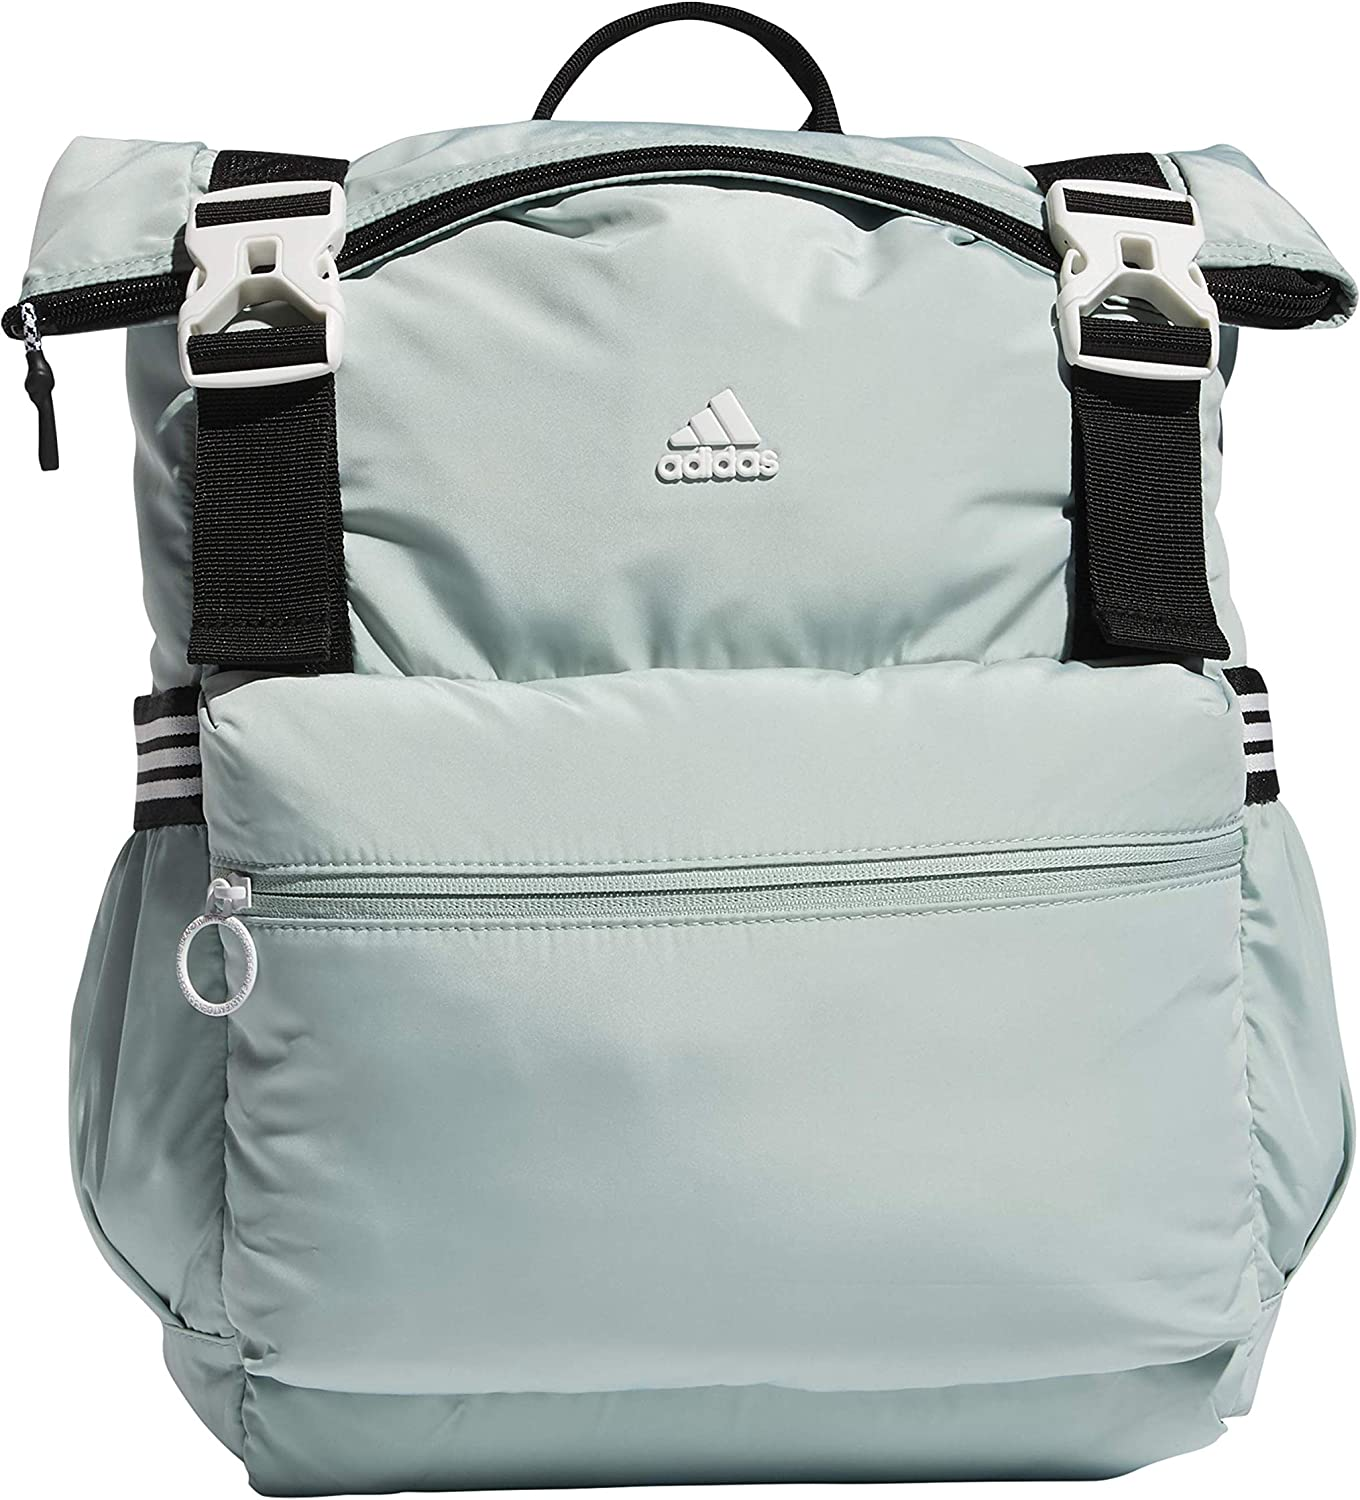 adidas Women's YOLA 2 Backpack Green White SEAL limited product Size Tint Elegant One Black